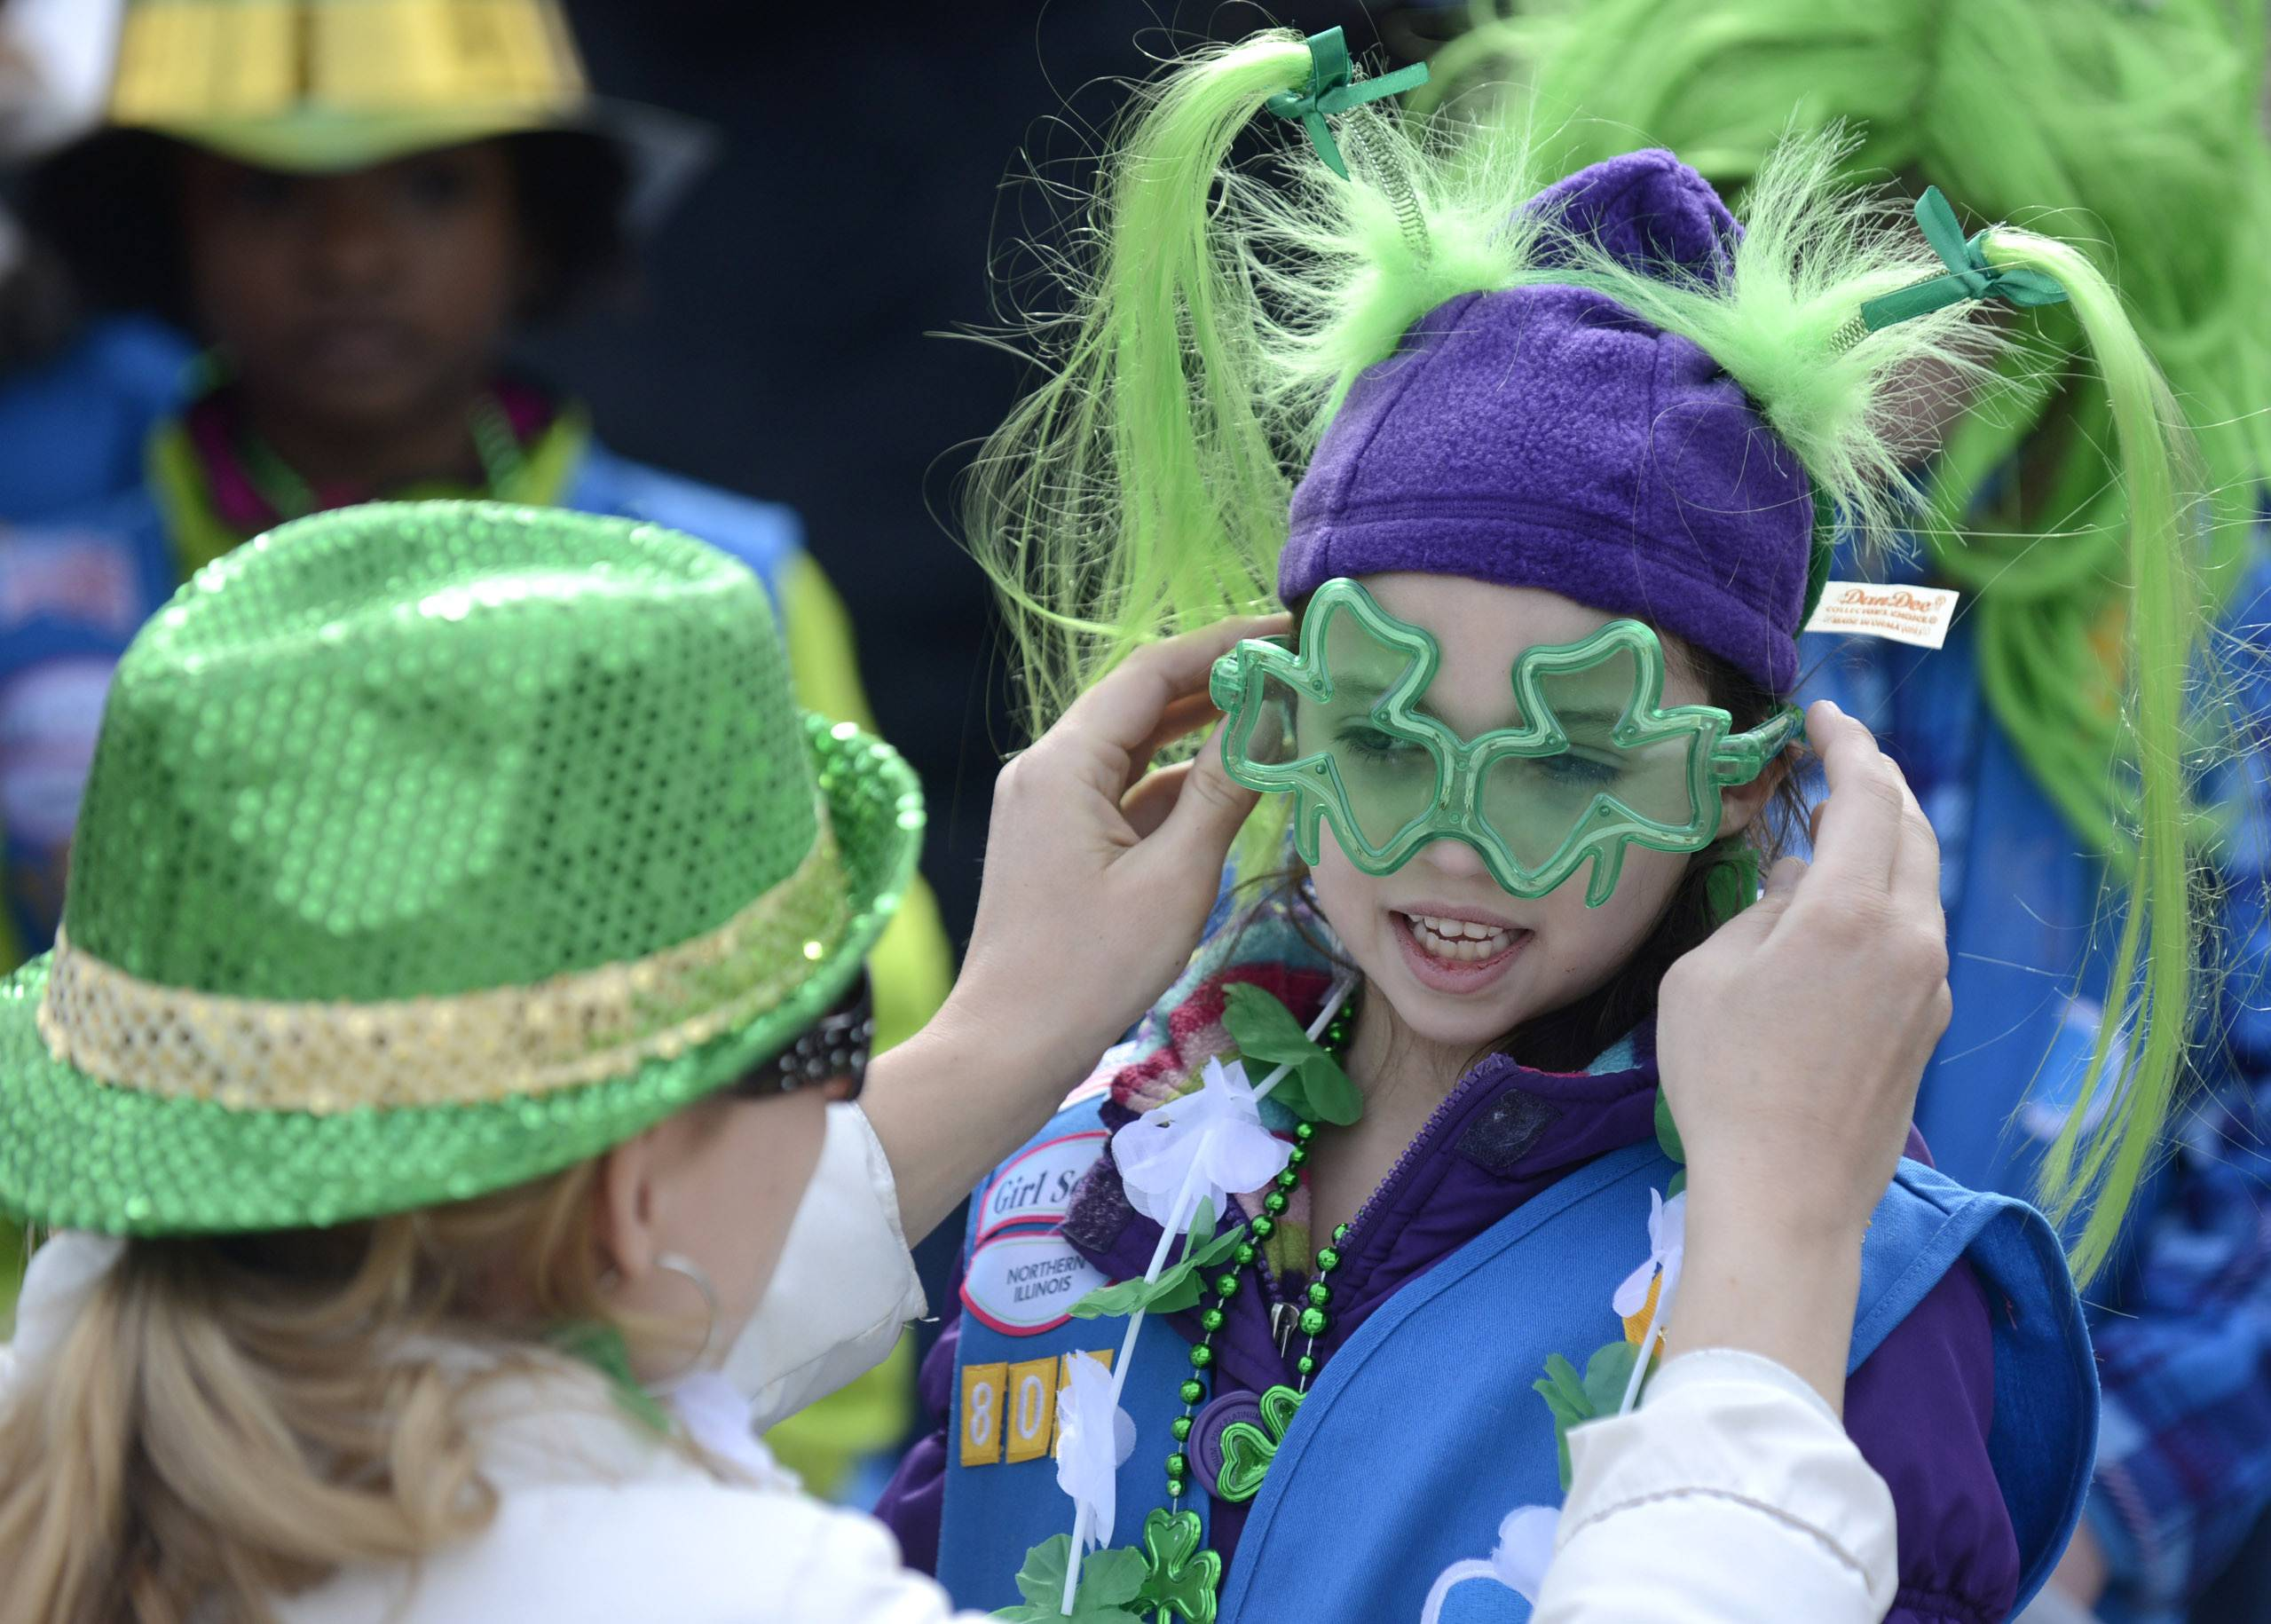 Bianca Santucci, 6, of St. Charles, has her shamrock sunglasses adjusted by her mother, Dawn, while they wait to walk with Girl Scout Troop 830 in the St. Patrick's Day parade in St. Charles on Saturday.